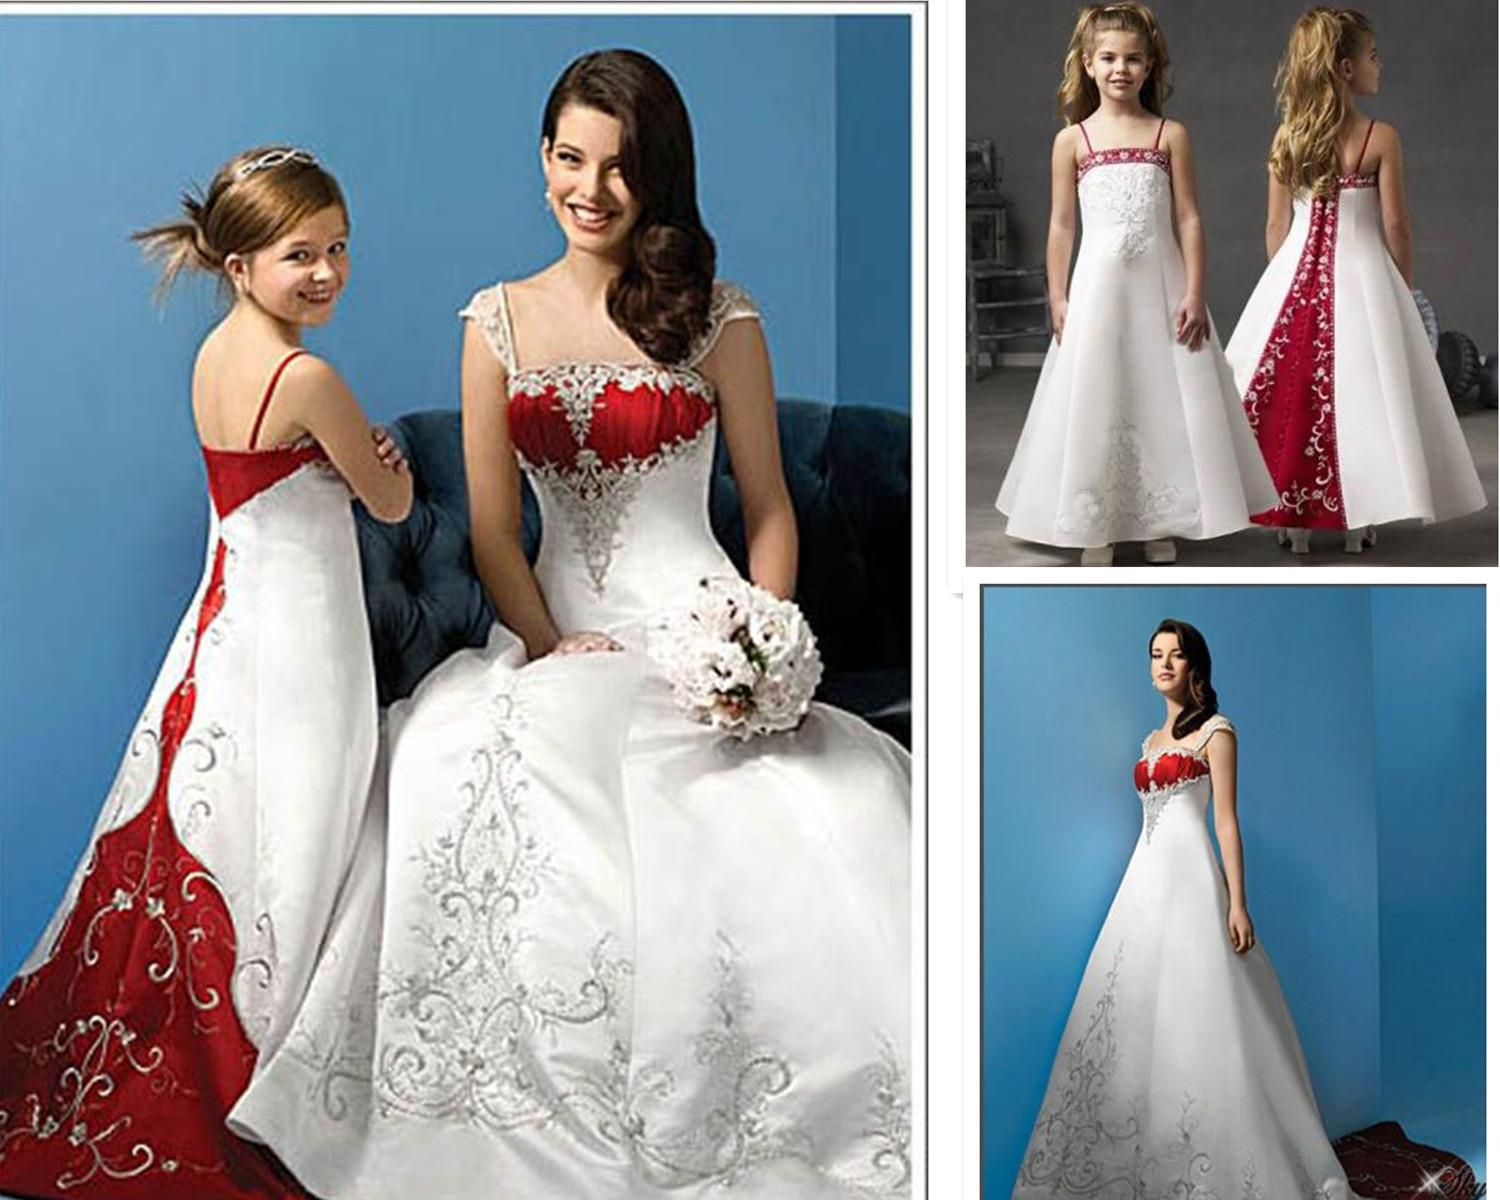 Discount exquisite white and red wedding dress mother daughter discount exquisite white and red wedding dress mother daughter matching dresses plus size wedding dress cap sleeves embroidery maternity wedding gown ombrellifo Choice Image